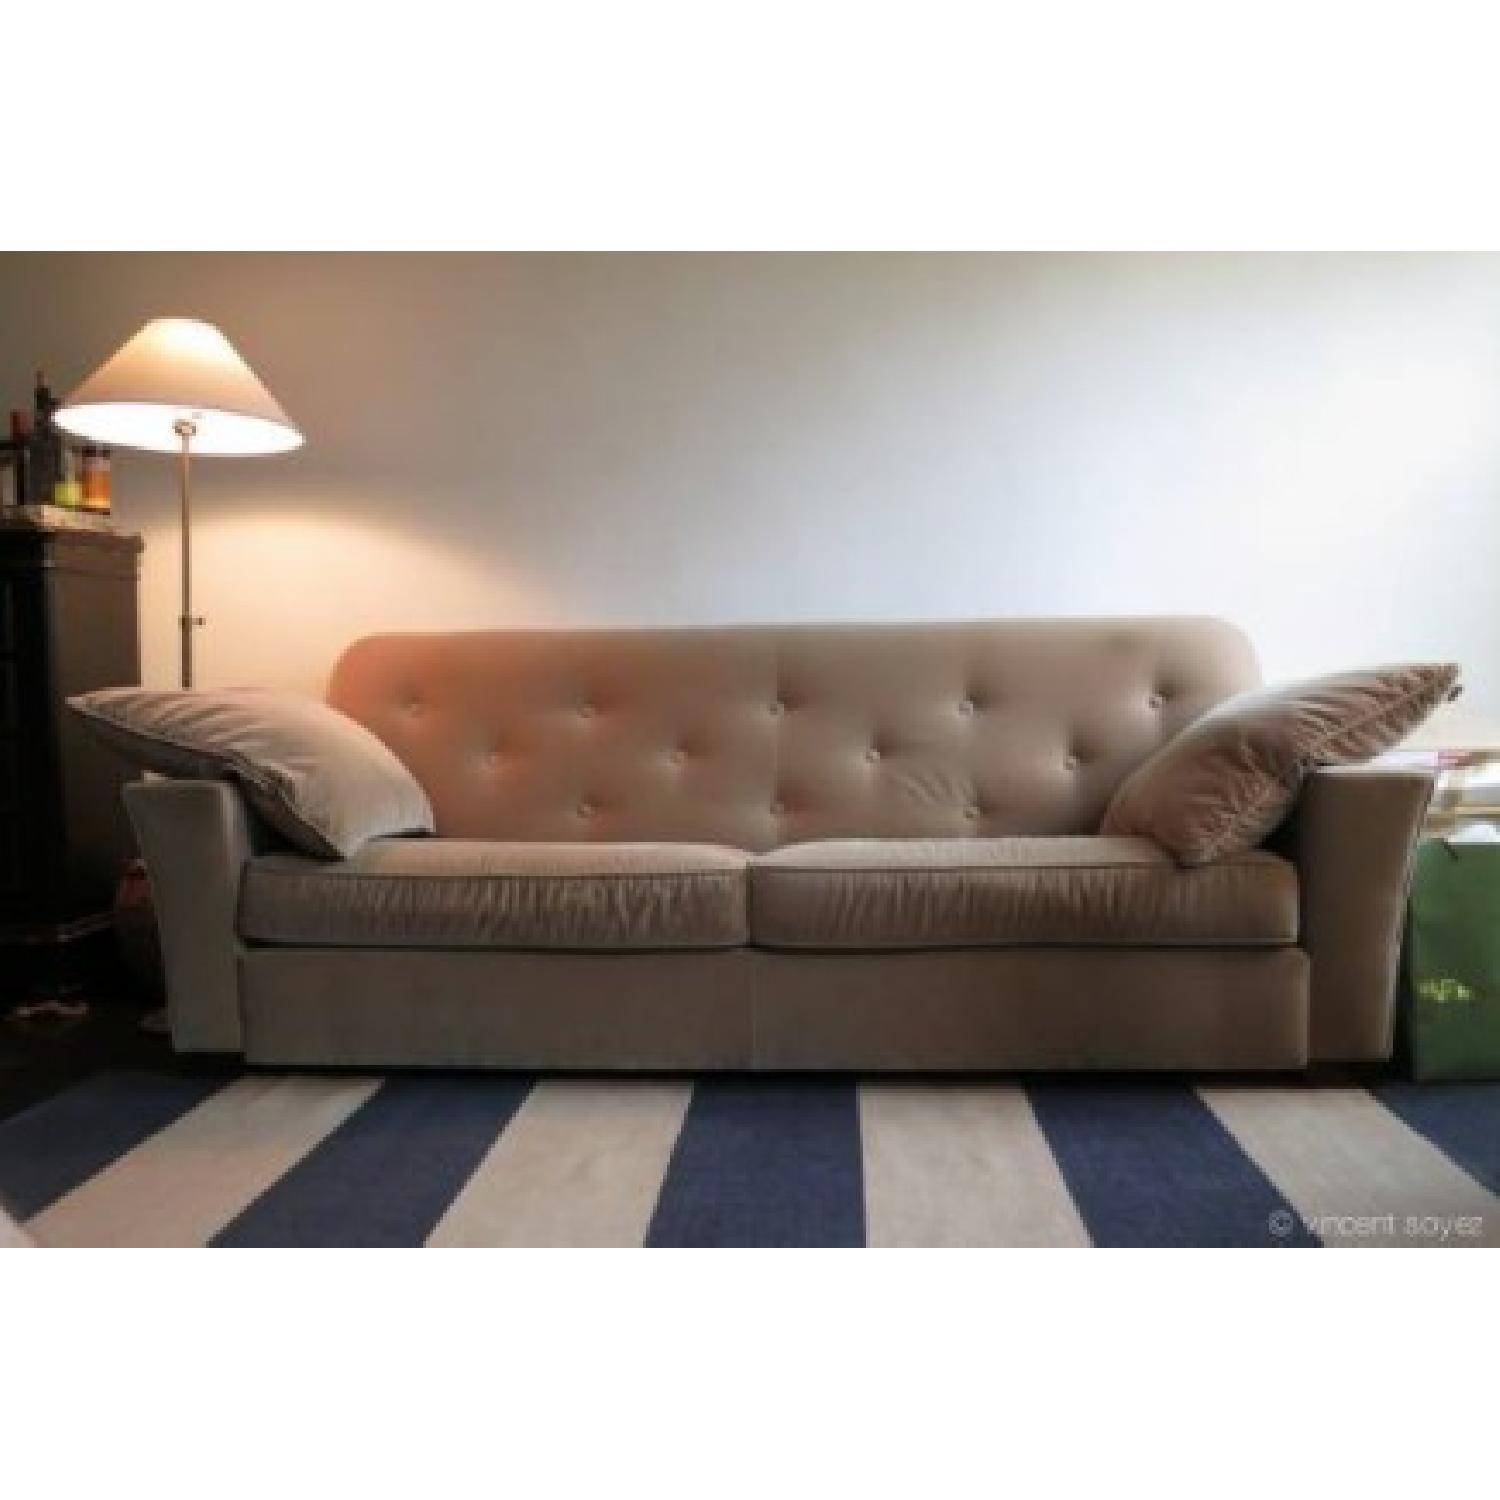 ABC Carpet & Home Cotton Velvet Sofa - image-2